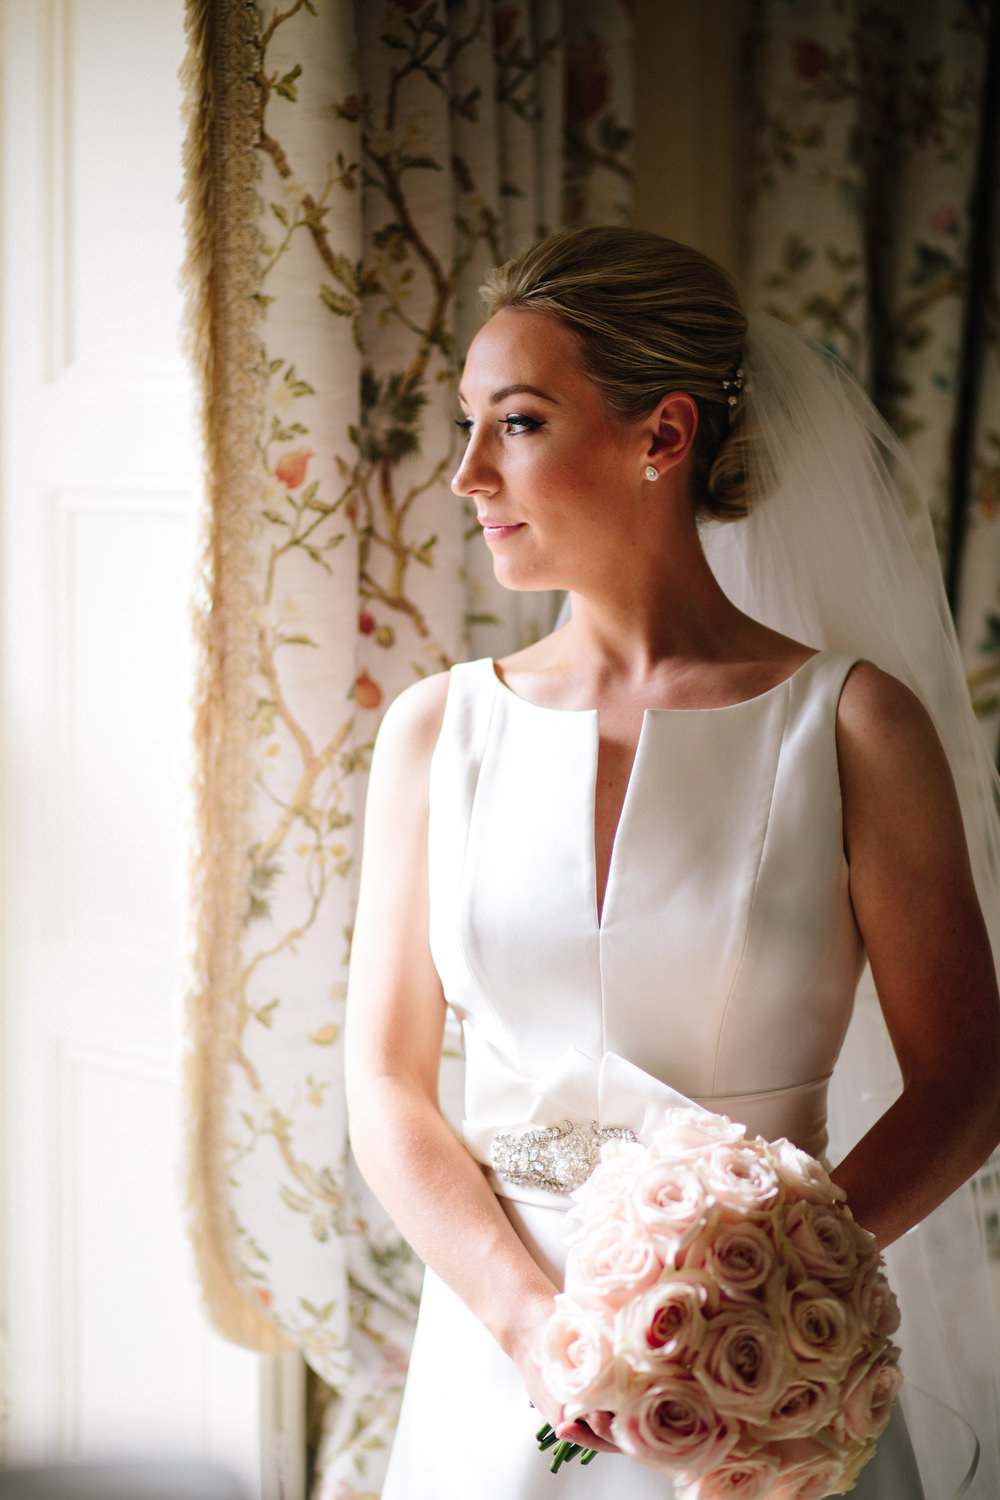 Tankardstown House Wedding - Bradley Quinn Photography 015.JPG